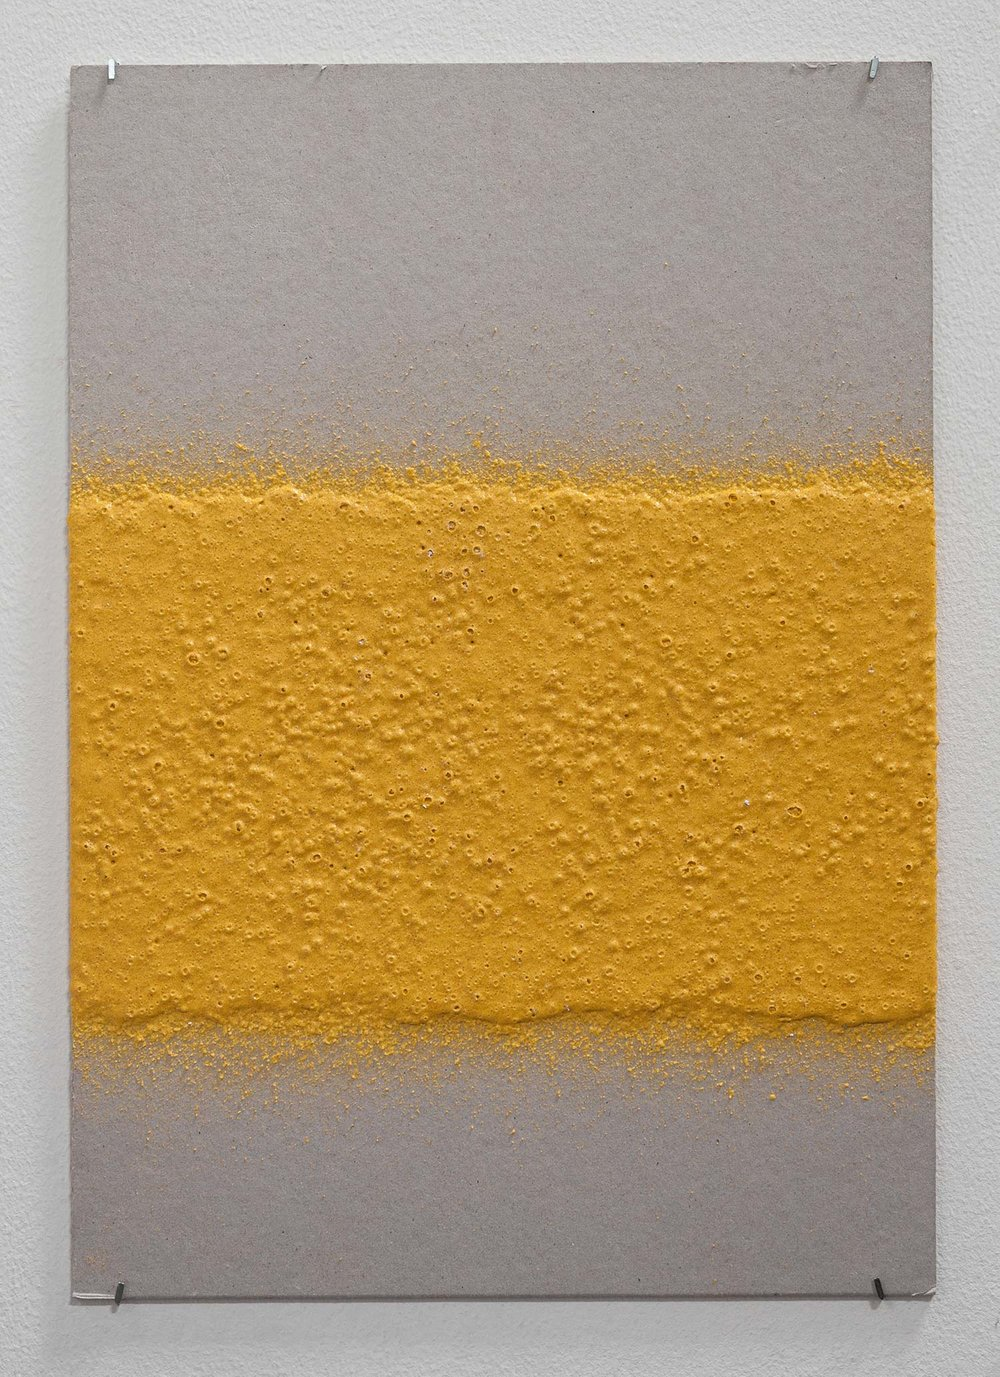 200mm (W), 1.5mm (T), Yellow, edge line (613), machine marking, remarking, D83 Nad Al Hamar, LP 10,  2017  Thermoplastic paint and reflective glass particles on grey board  35 x 50 cm